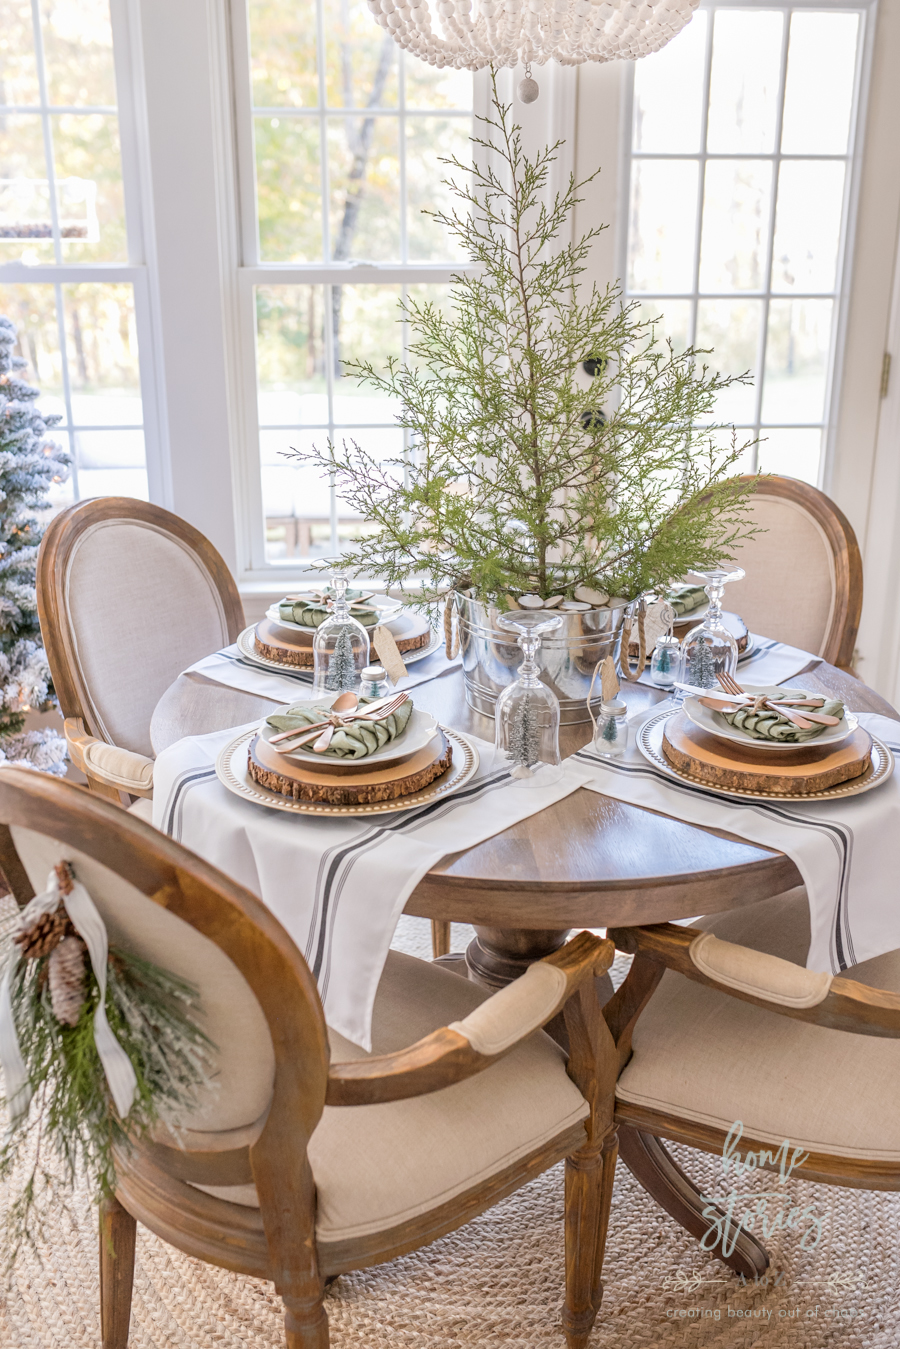 Simple Farmhouse Christmas Table Tips On Creating An Adorable And Affordable Christmas Table